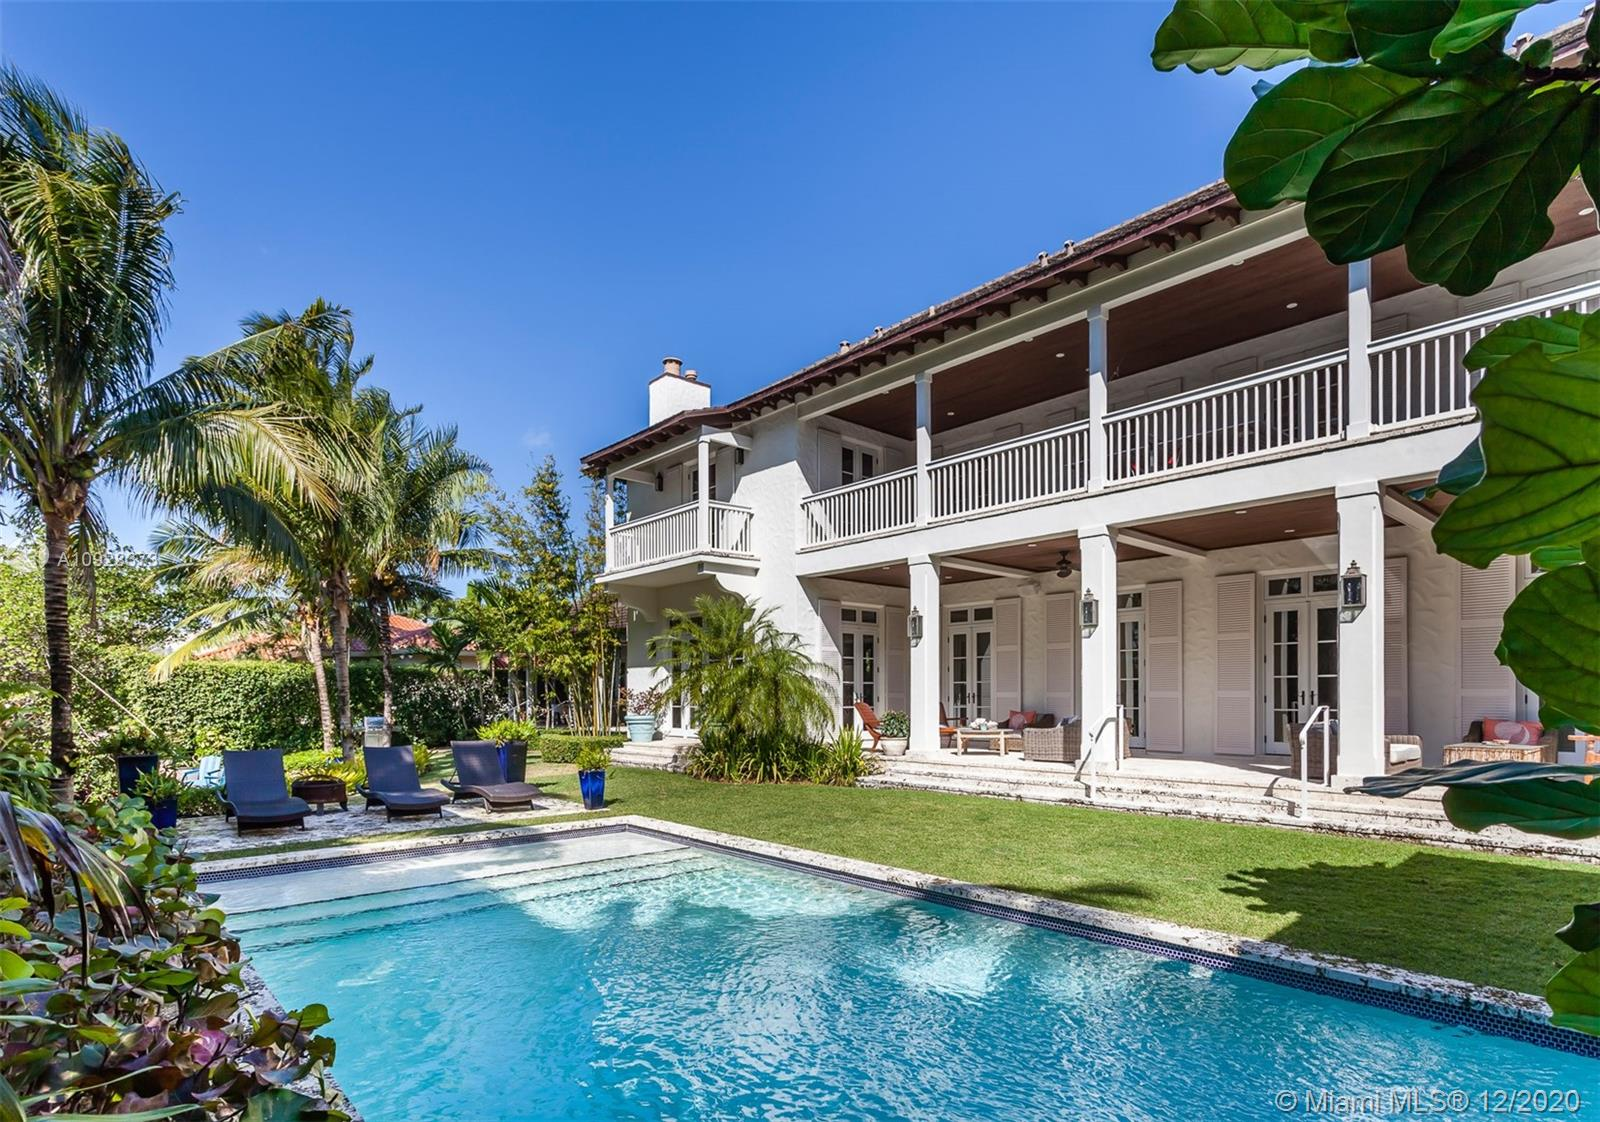 Located in Gables by the Sea, this corner custom built 2-story waterfront home is perfection in every way. French doors lining the back of the home provide exceptional views of the canal, sparkling pool, and garden. The home features a gourmet kitchen, large upstairs and downstairs family rooms, formal dining room, guest house, and a master suite with direct canal views. With every detail a mark of perfection and no expense spared, this one-of-a-kind home is truly remarkable.